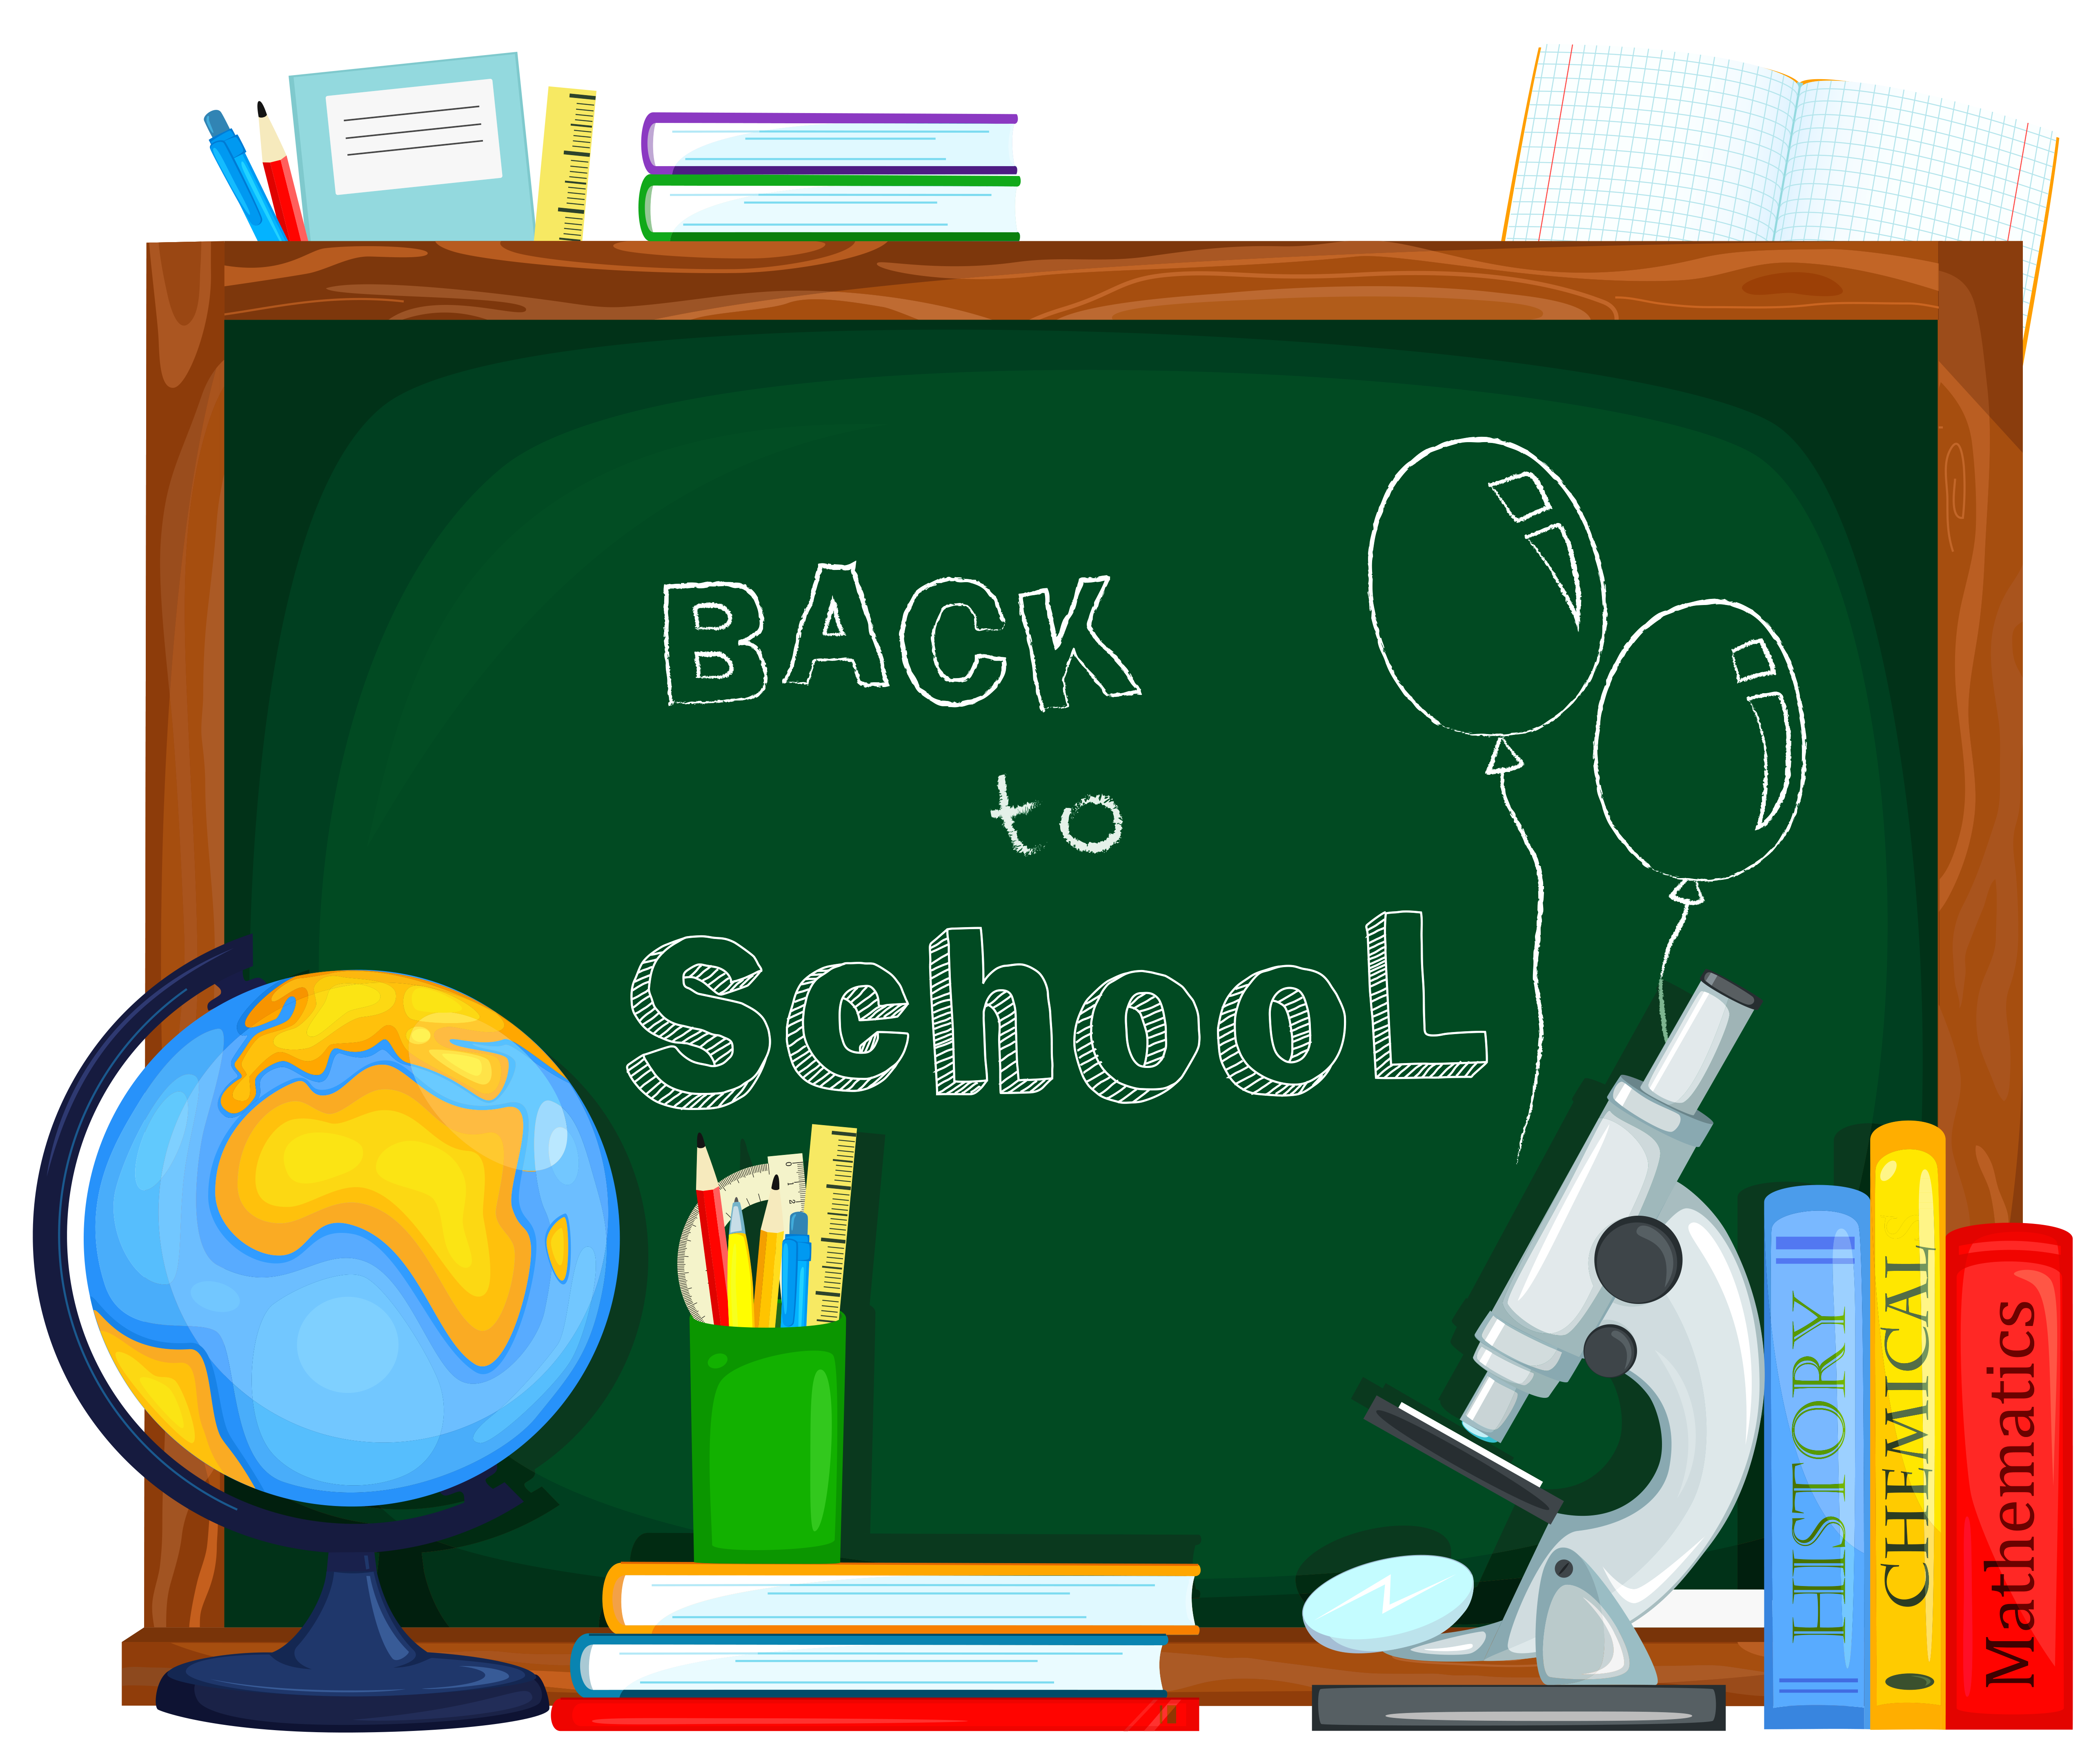 Back to school clipart clip art teacher 5.